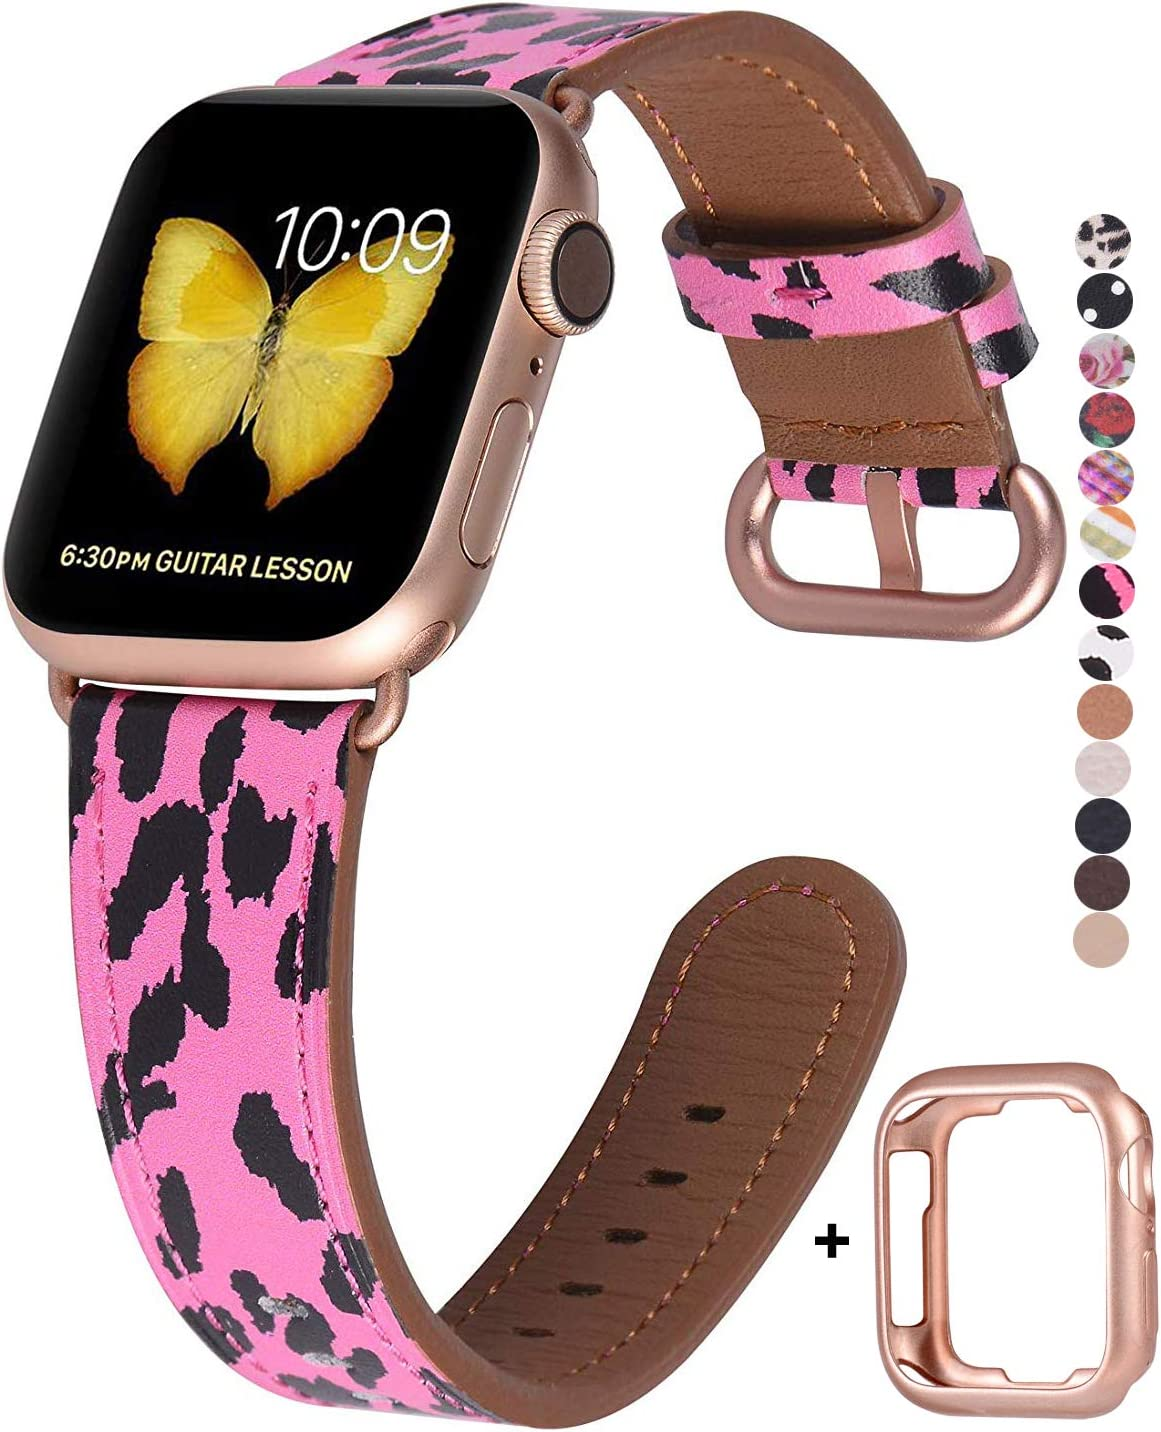 JSGJMY Compatible with Apple Watch Band 38mm 40mm Women Genuine Leather with Rose Gold Adapter and Buckle(The Same Color as Series 5/4/3 Gold Aluminum) for iwatch Series 5/4/3/2/1, Hot Pink Leopard